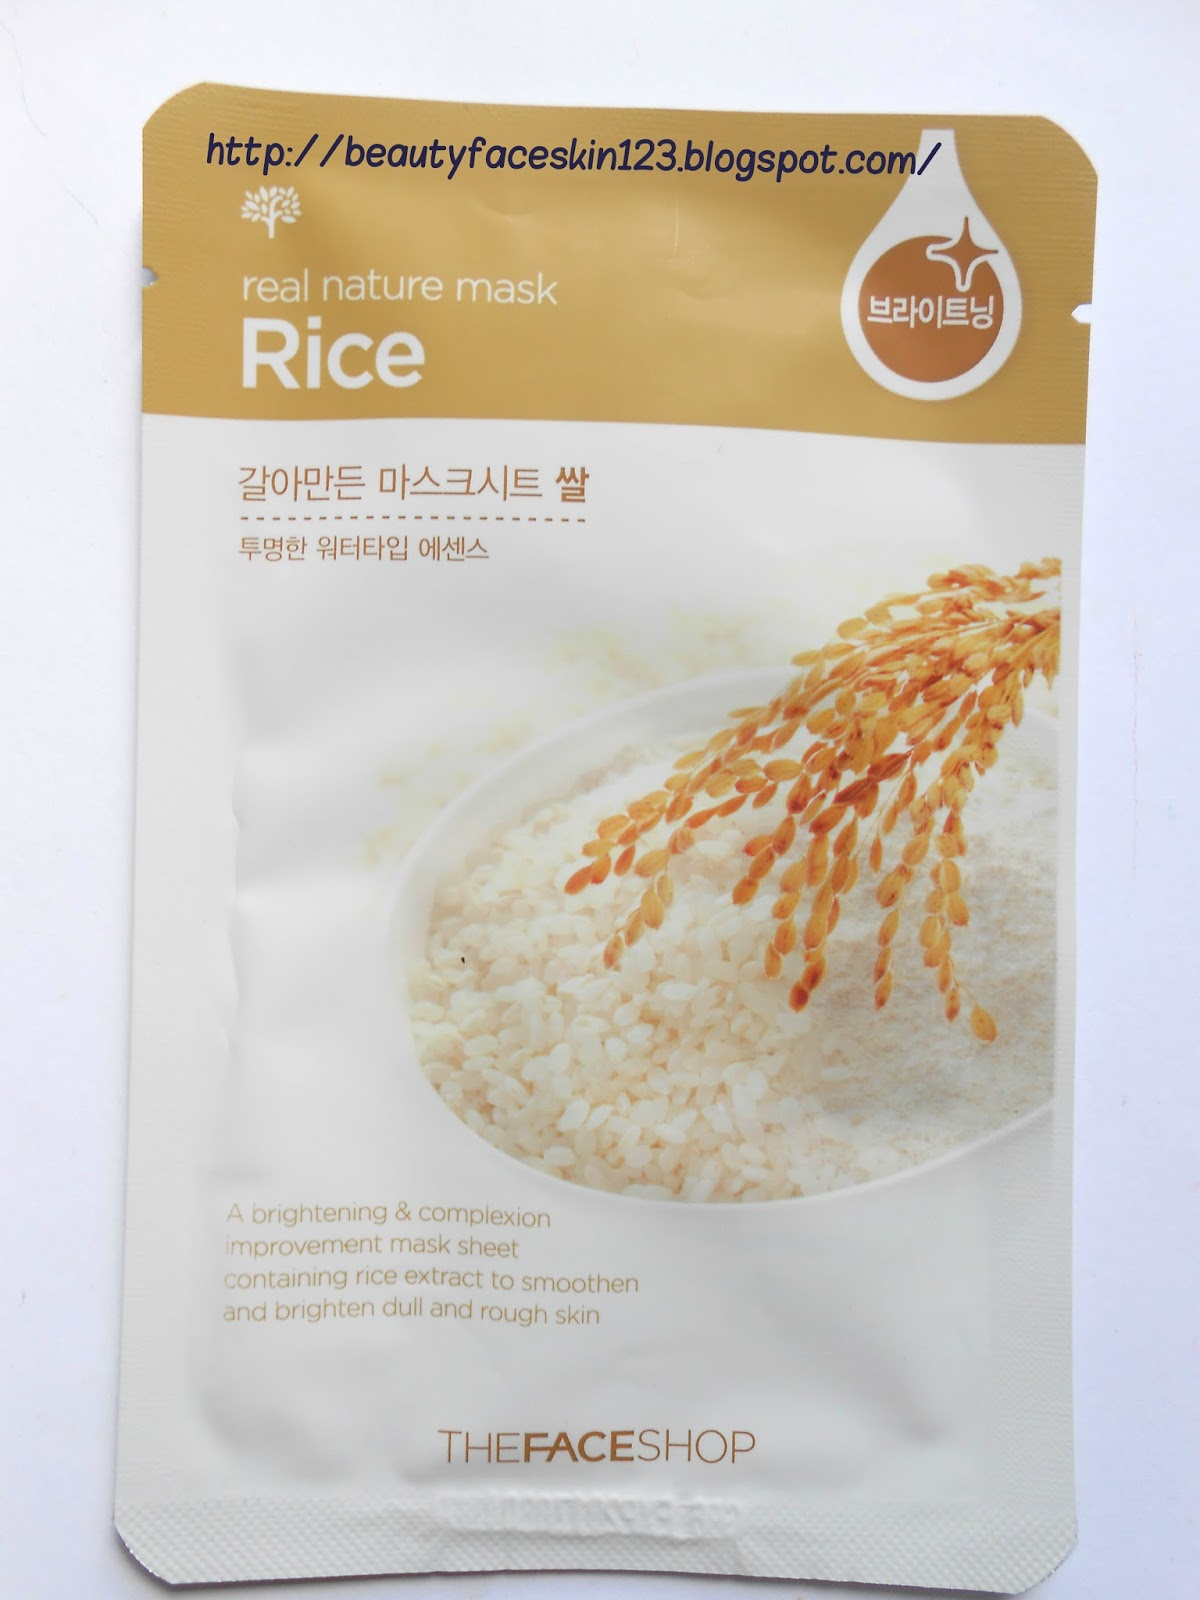 GREAT SKIN&LIFE: REVIEW ON THE FACE SHOP REAL NATURE RICE MASK